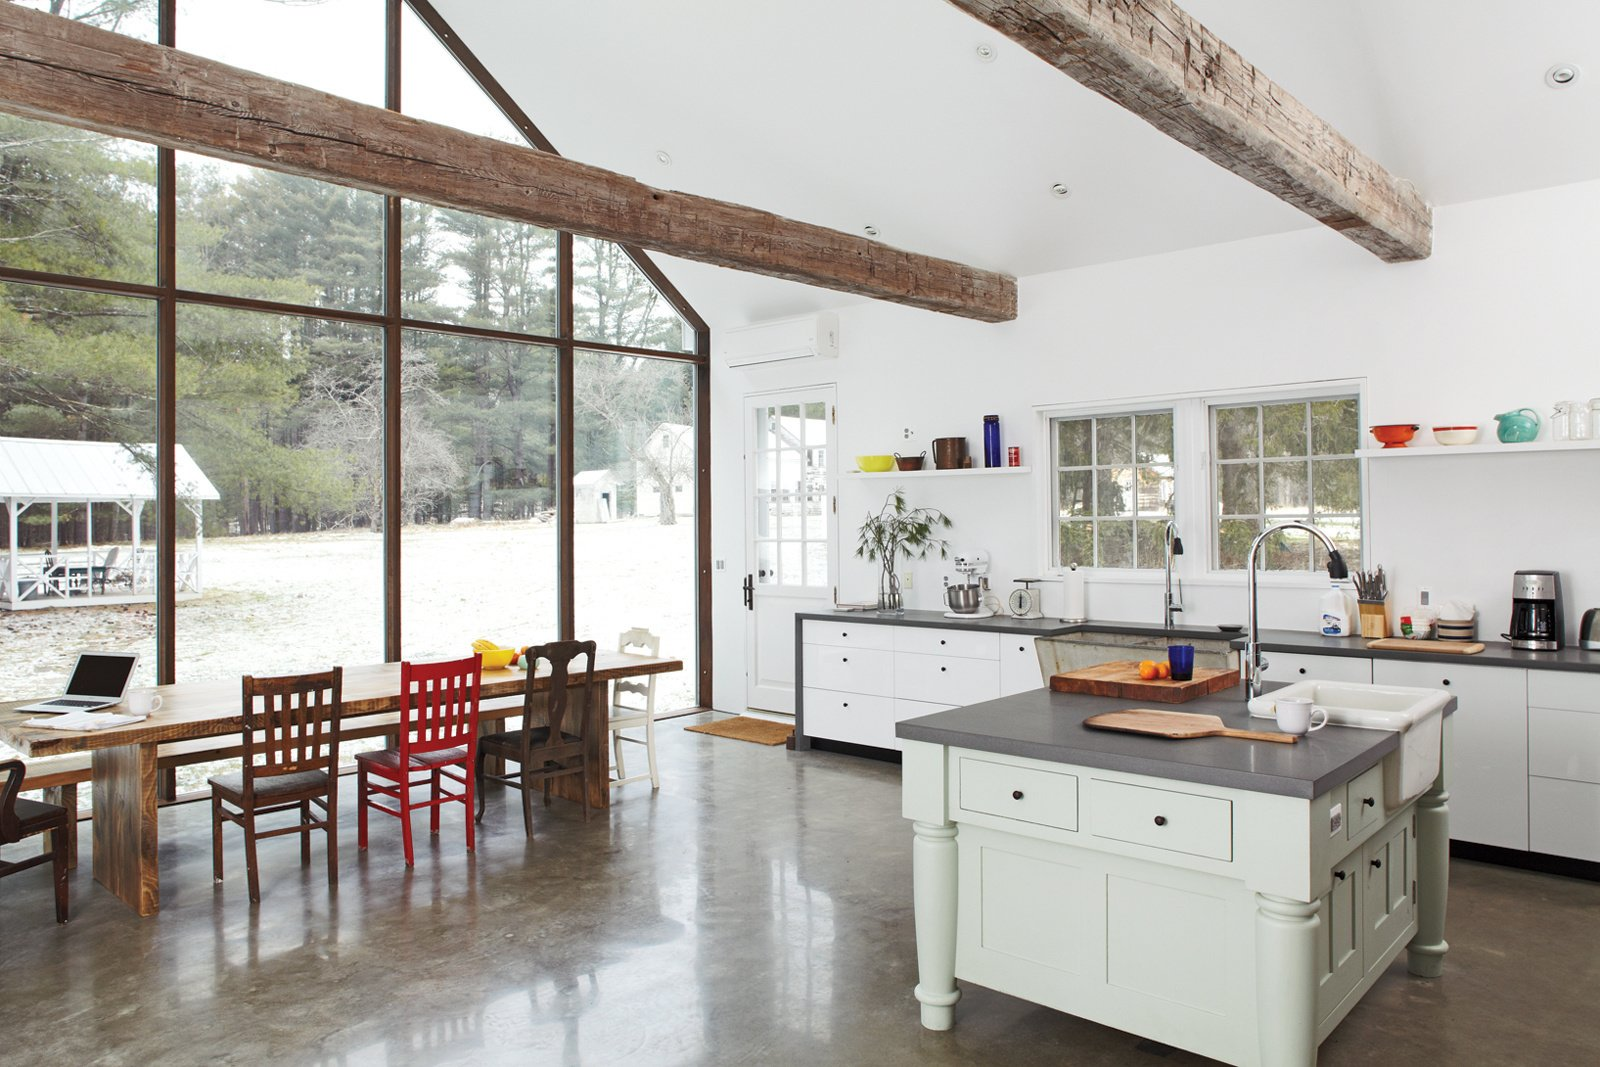 """Homeowner Tom Givone states, """"The hope has been to combine archaic and modern elements in a way that would enhance the beauty of each by virtue of its contrast with the other."""" While the table is situated in front of the house's rear wall of skyscraper glass. The laminated kitchen cabinets by Ikea are framed in wraparound bluestone; the 48-inch commercial range is by FiveStar. Photo by: Mark Mahaney  Kitchens We Love: Part 2 by Jami Smith from Ways to Modernize a Farmhouse"""